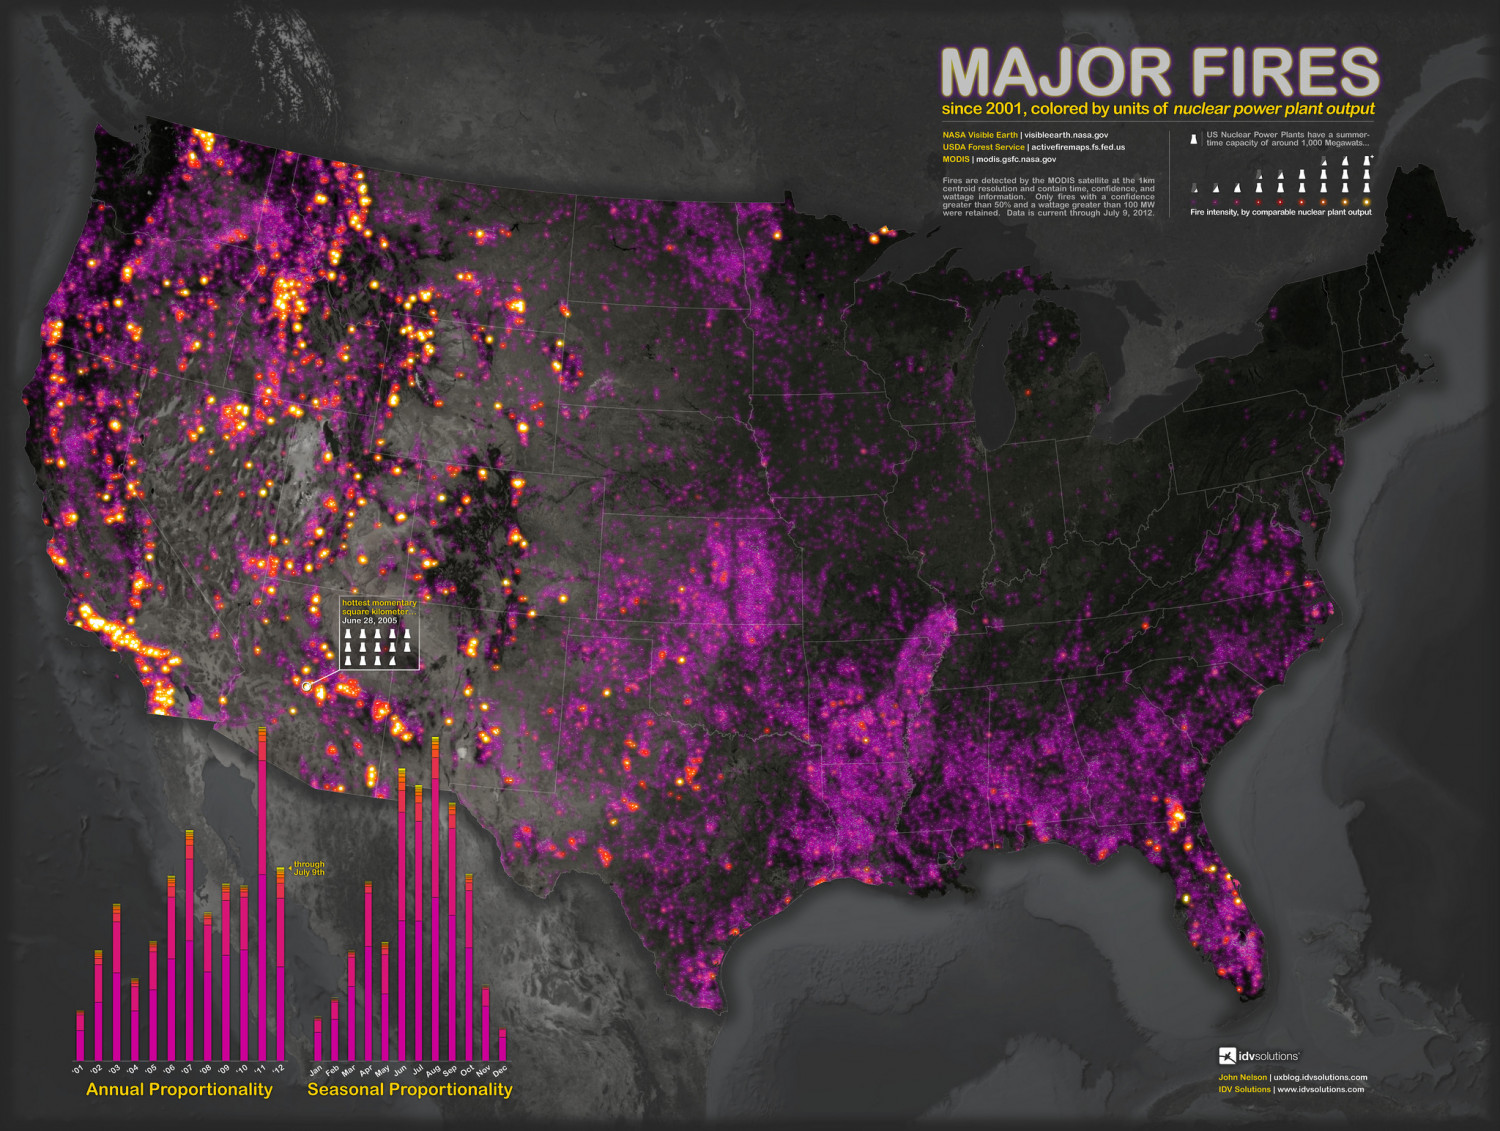 Major Fires Since 2001 Infographic